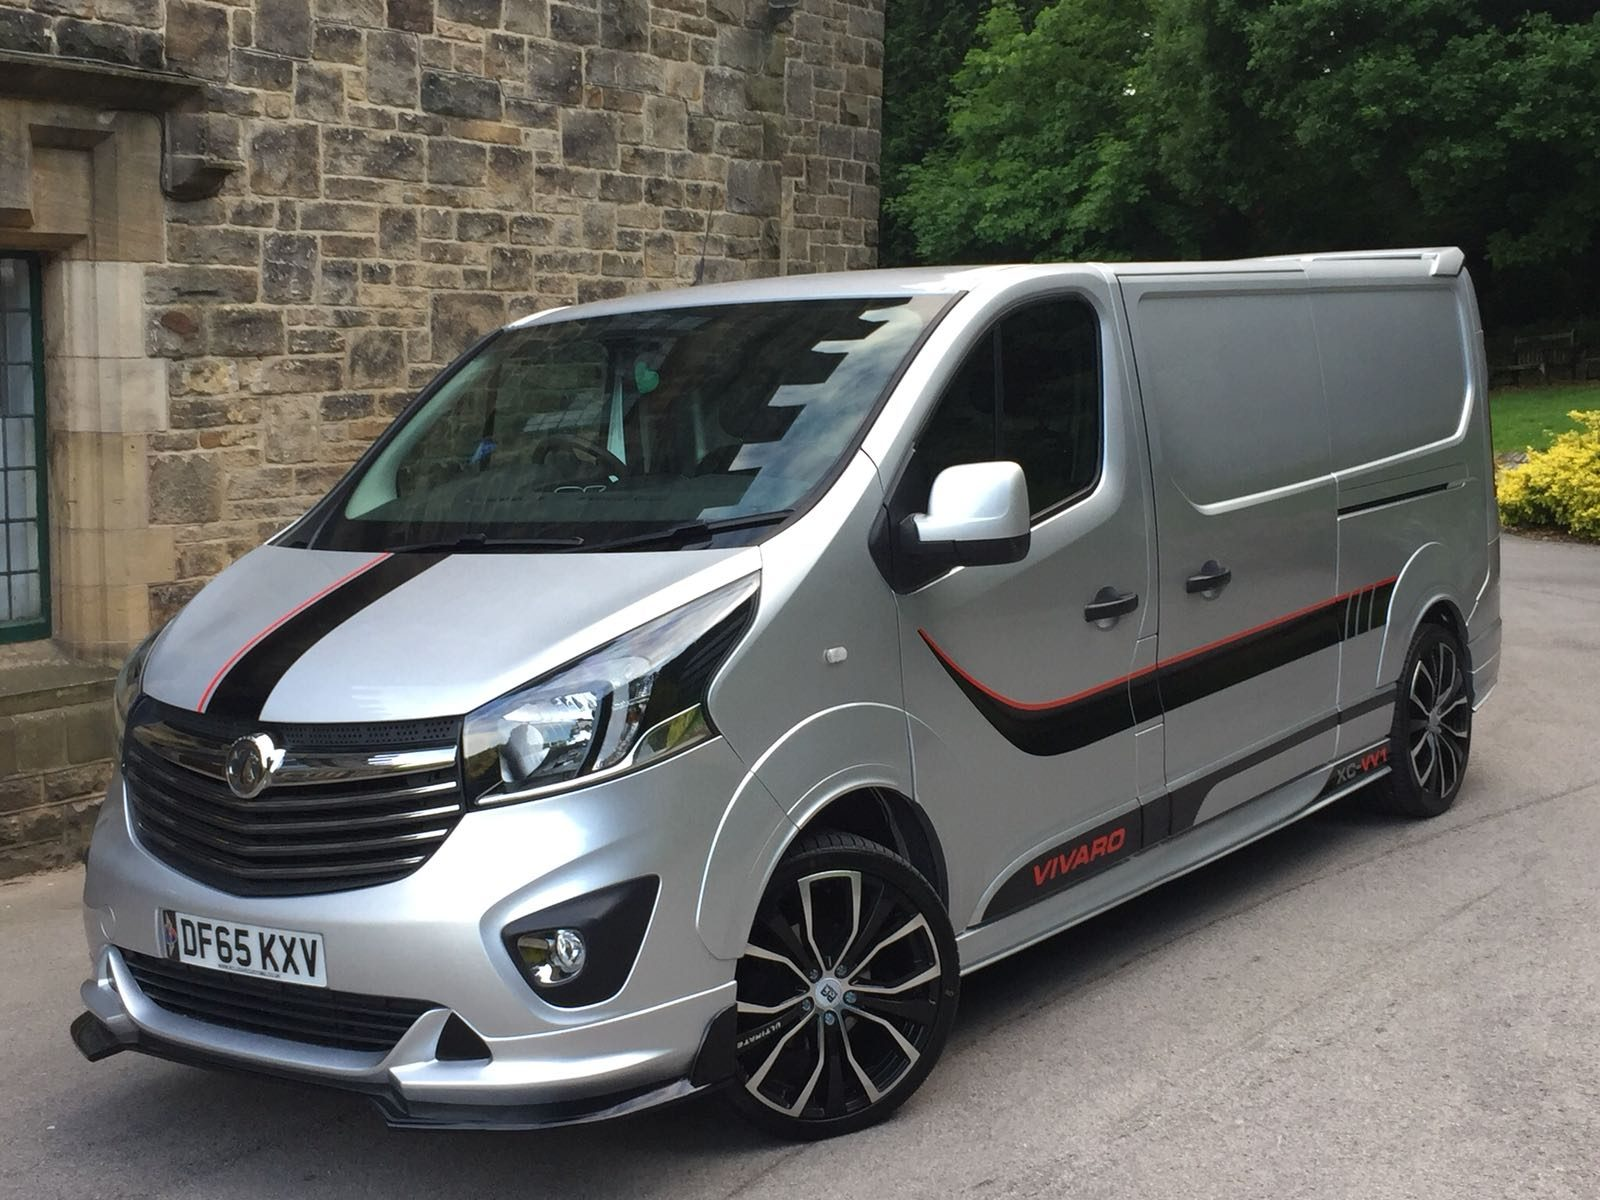 vauxhall vivaro arches  piece xclusive customz